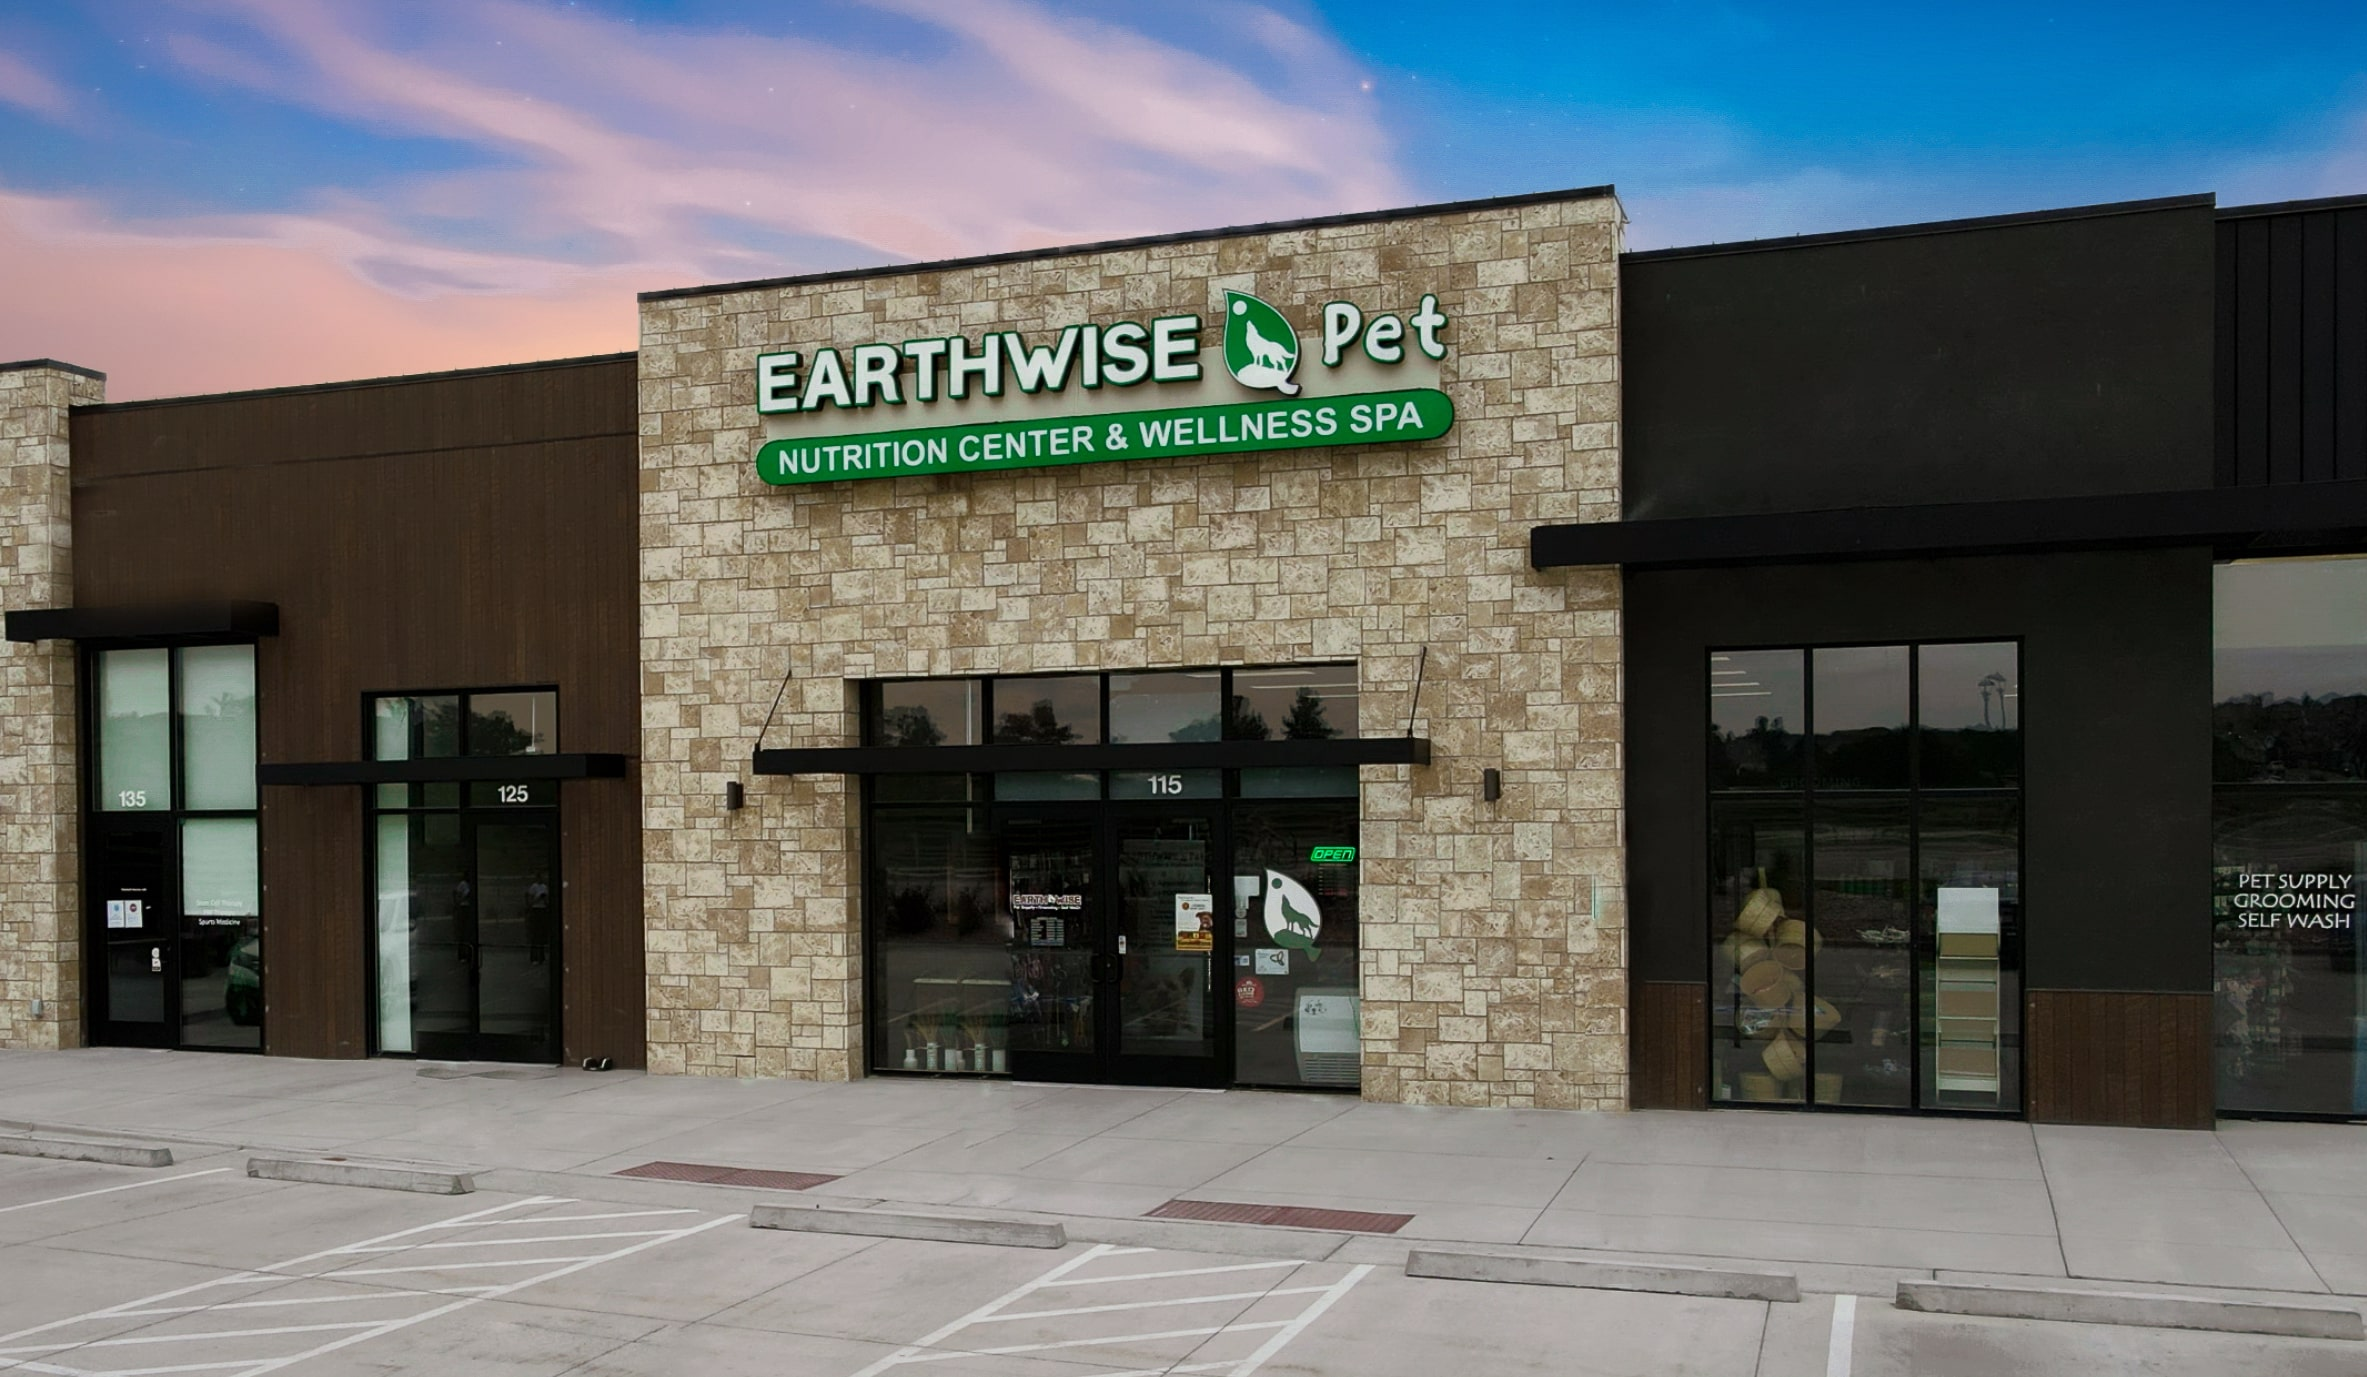 The front of an How much do EarthWise Pet Franchise